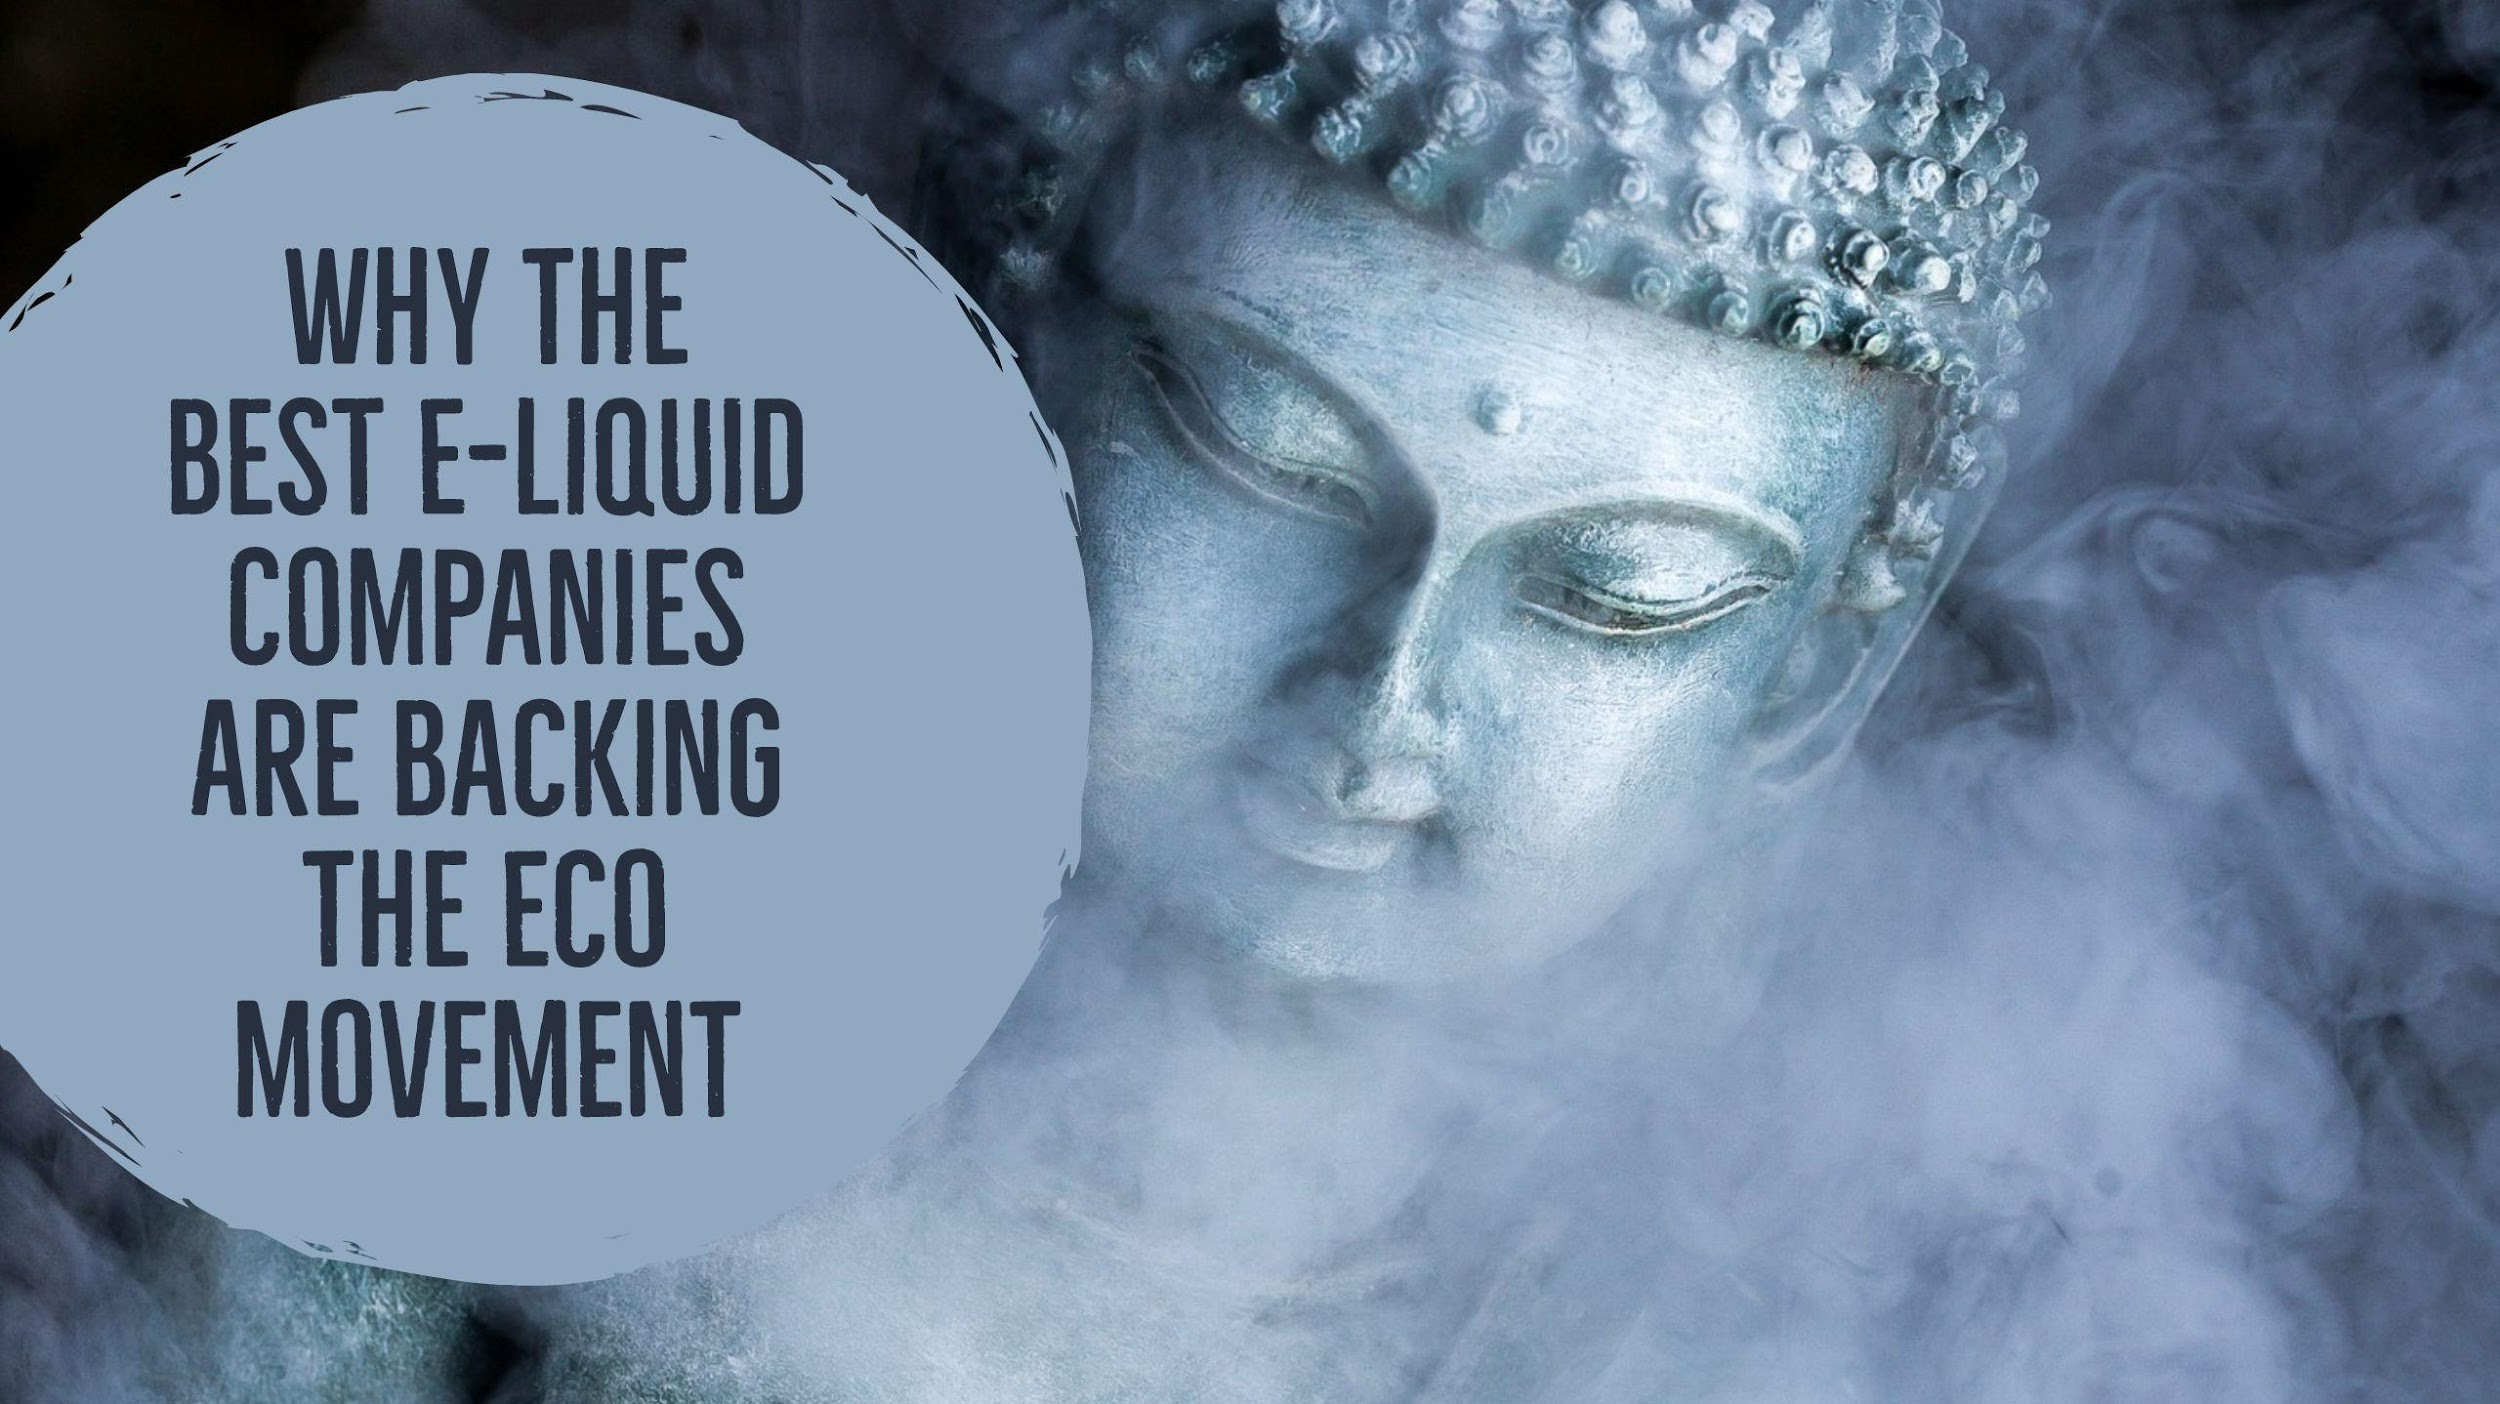 Why the Best E-Liquid Companies are now Backing the Eco-Movement: